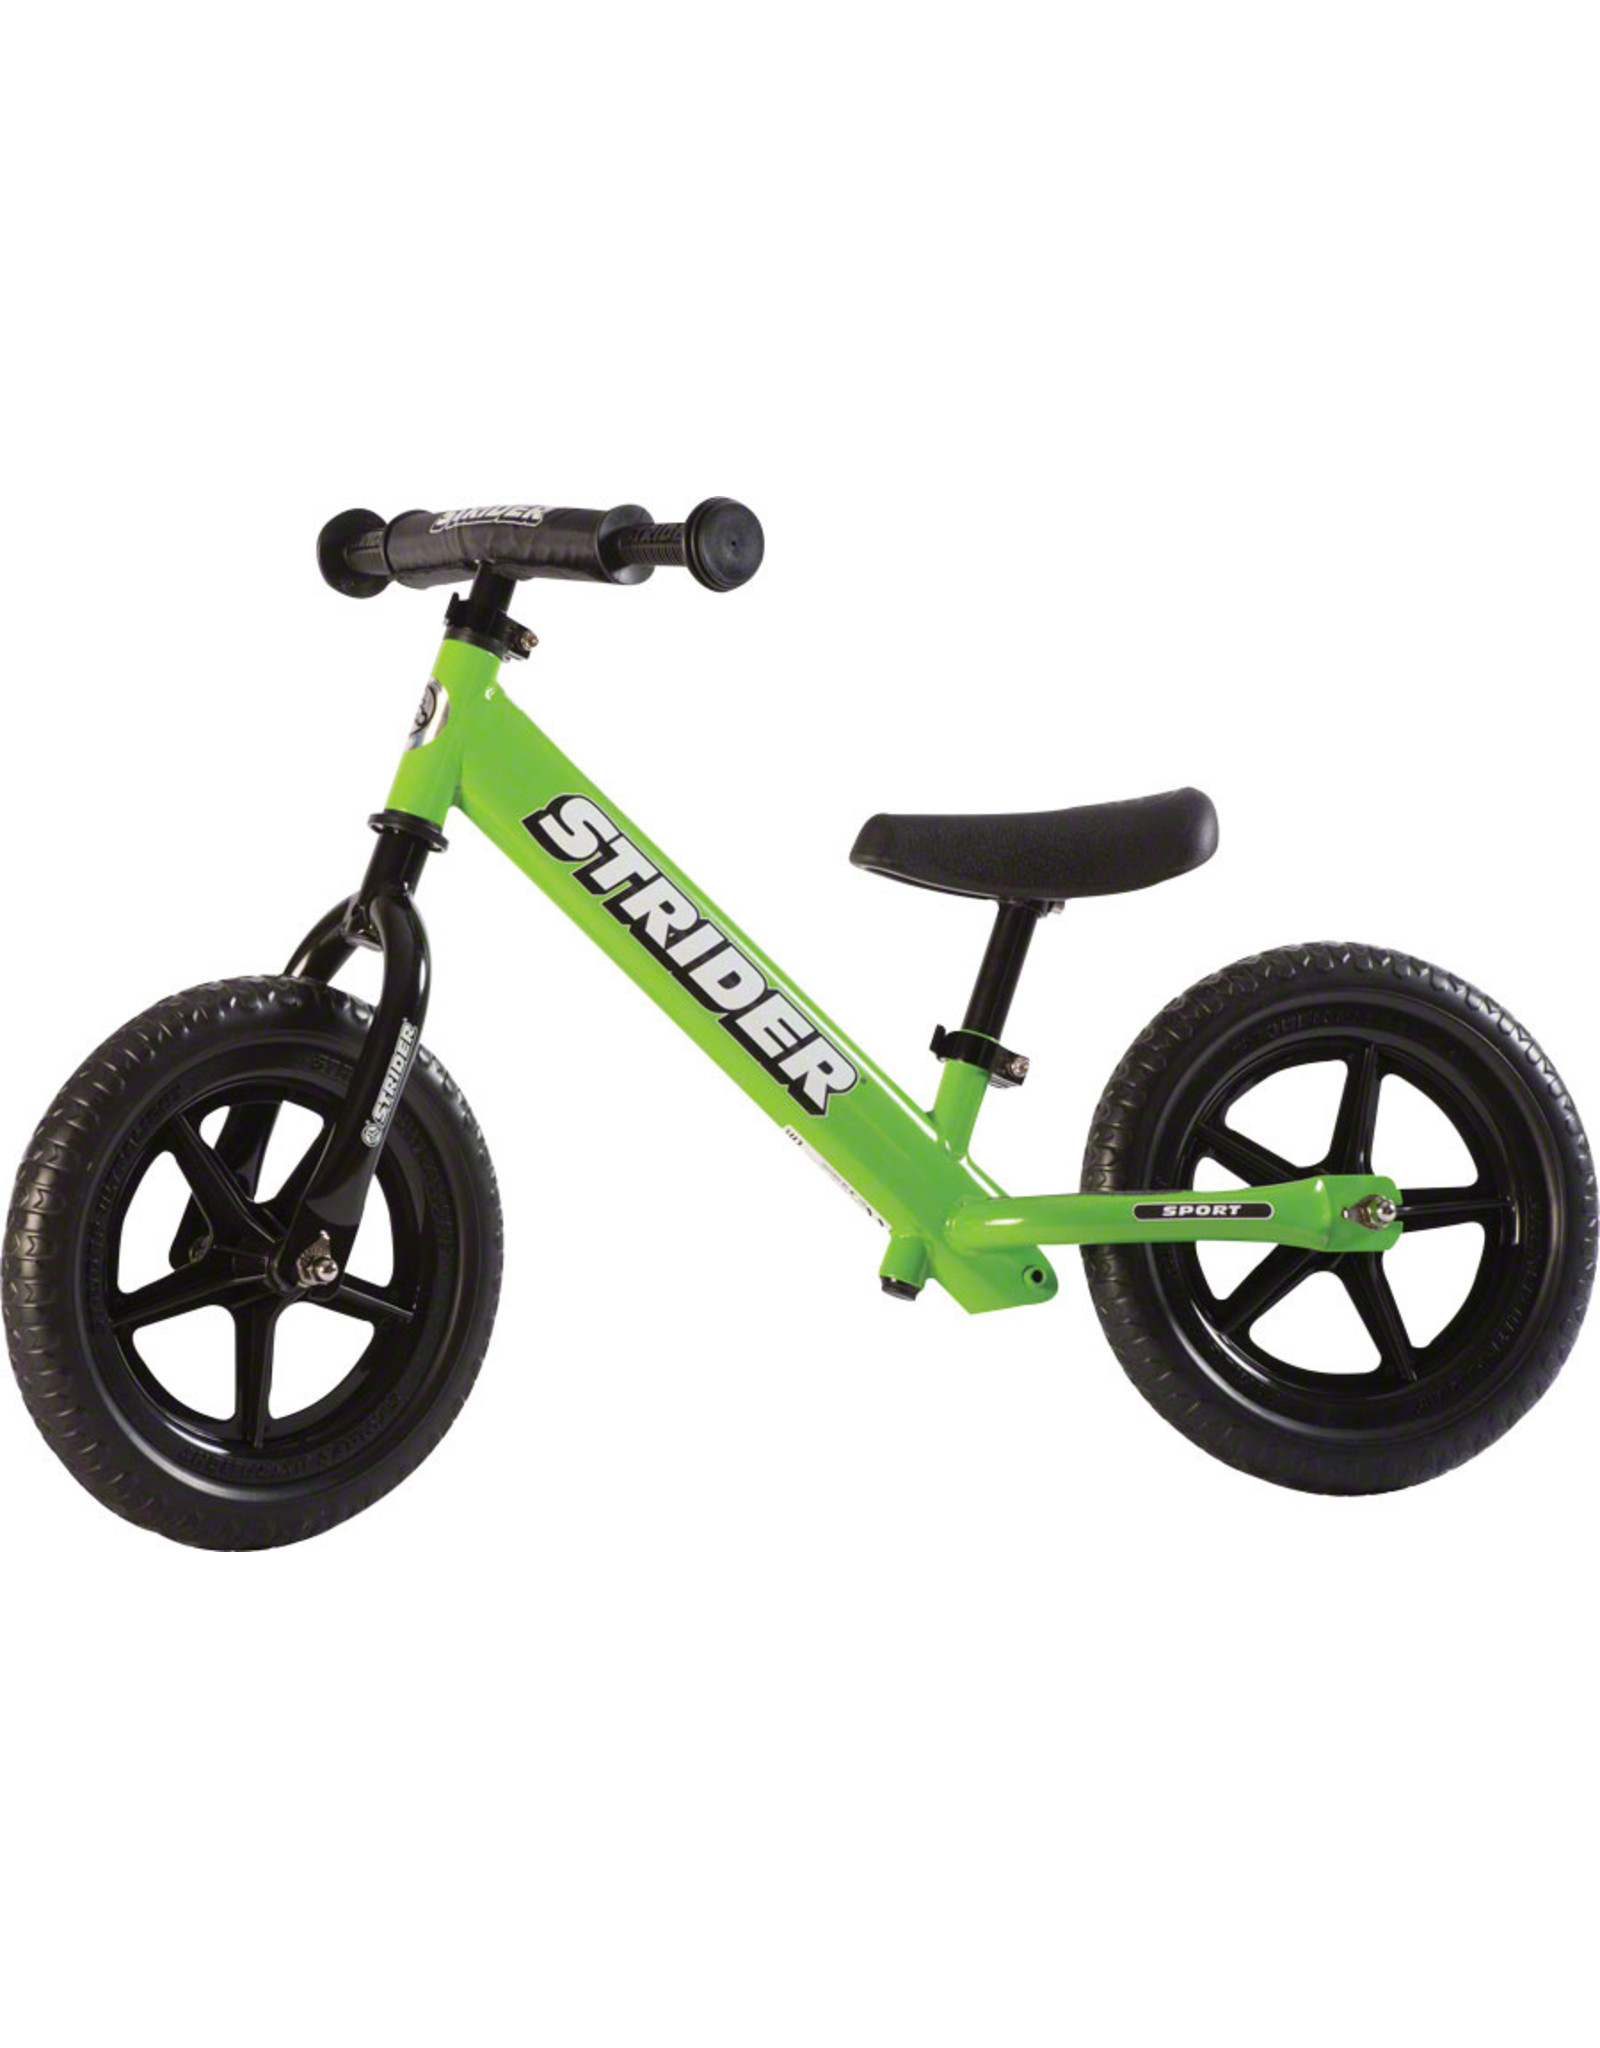 Strider 12 Sport Kids Balance Bike: Green